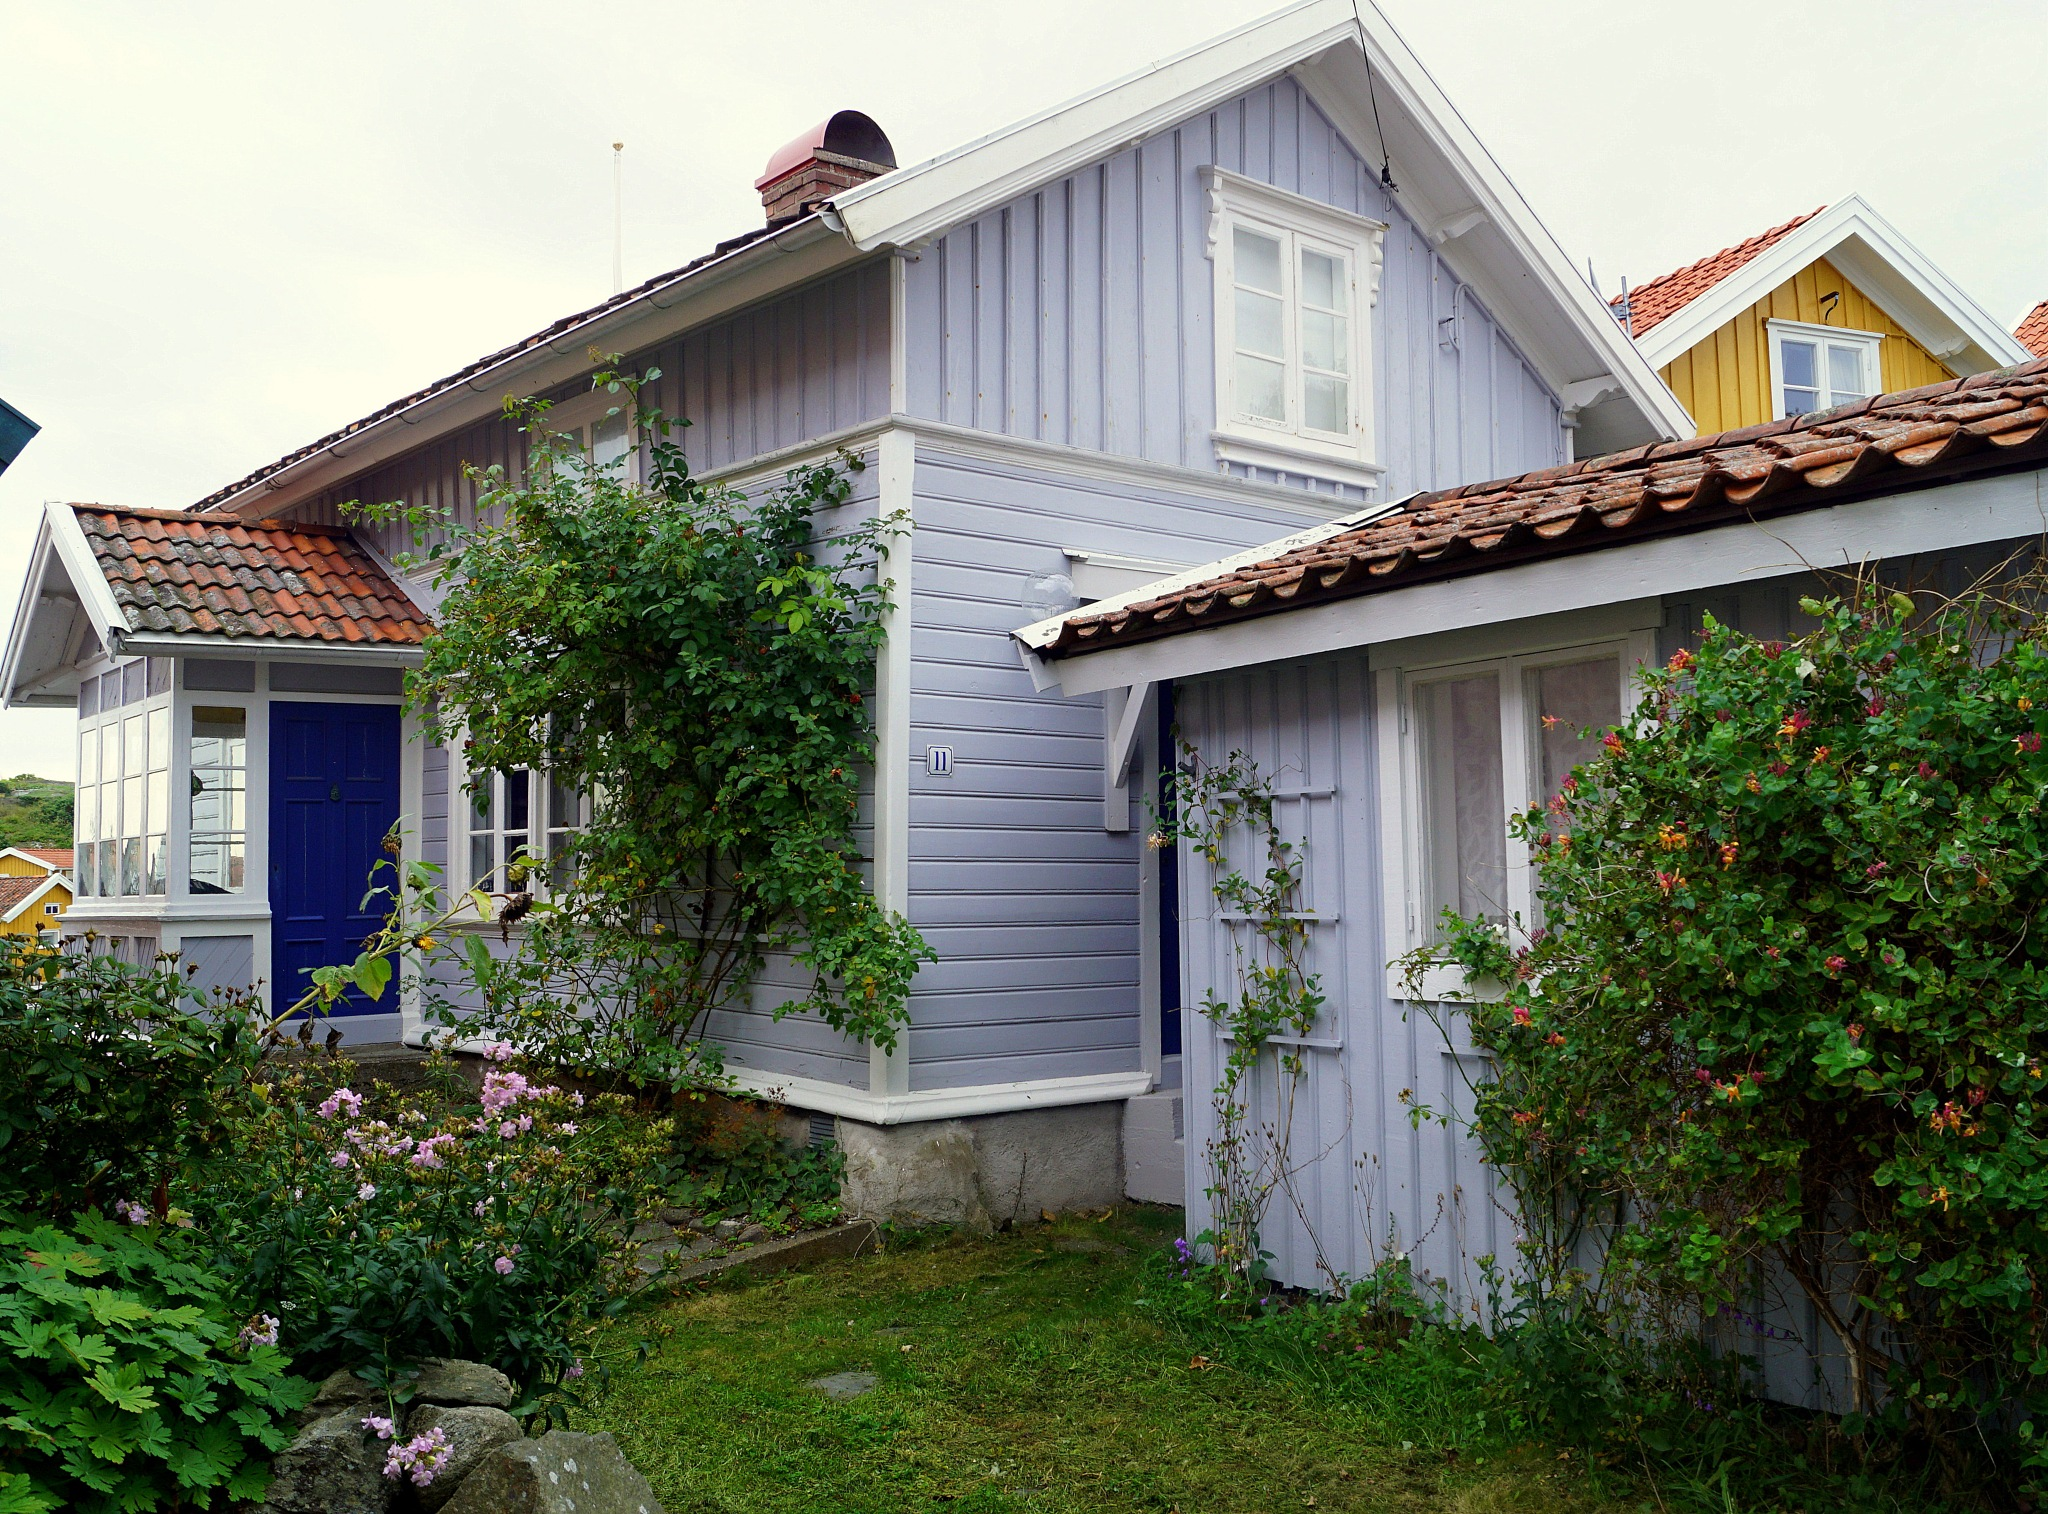 One more of those small houses by susannemkarlsson